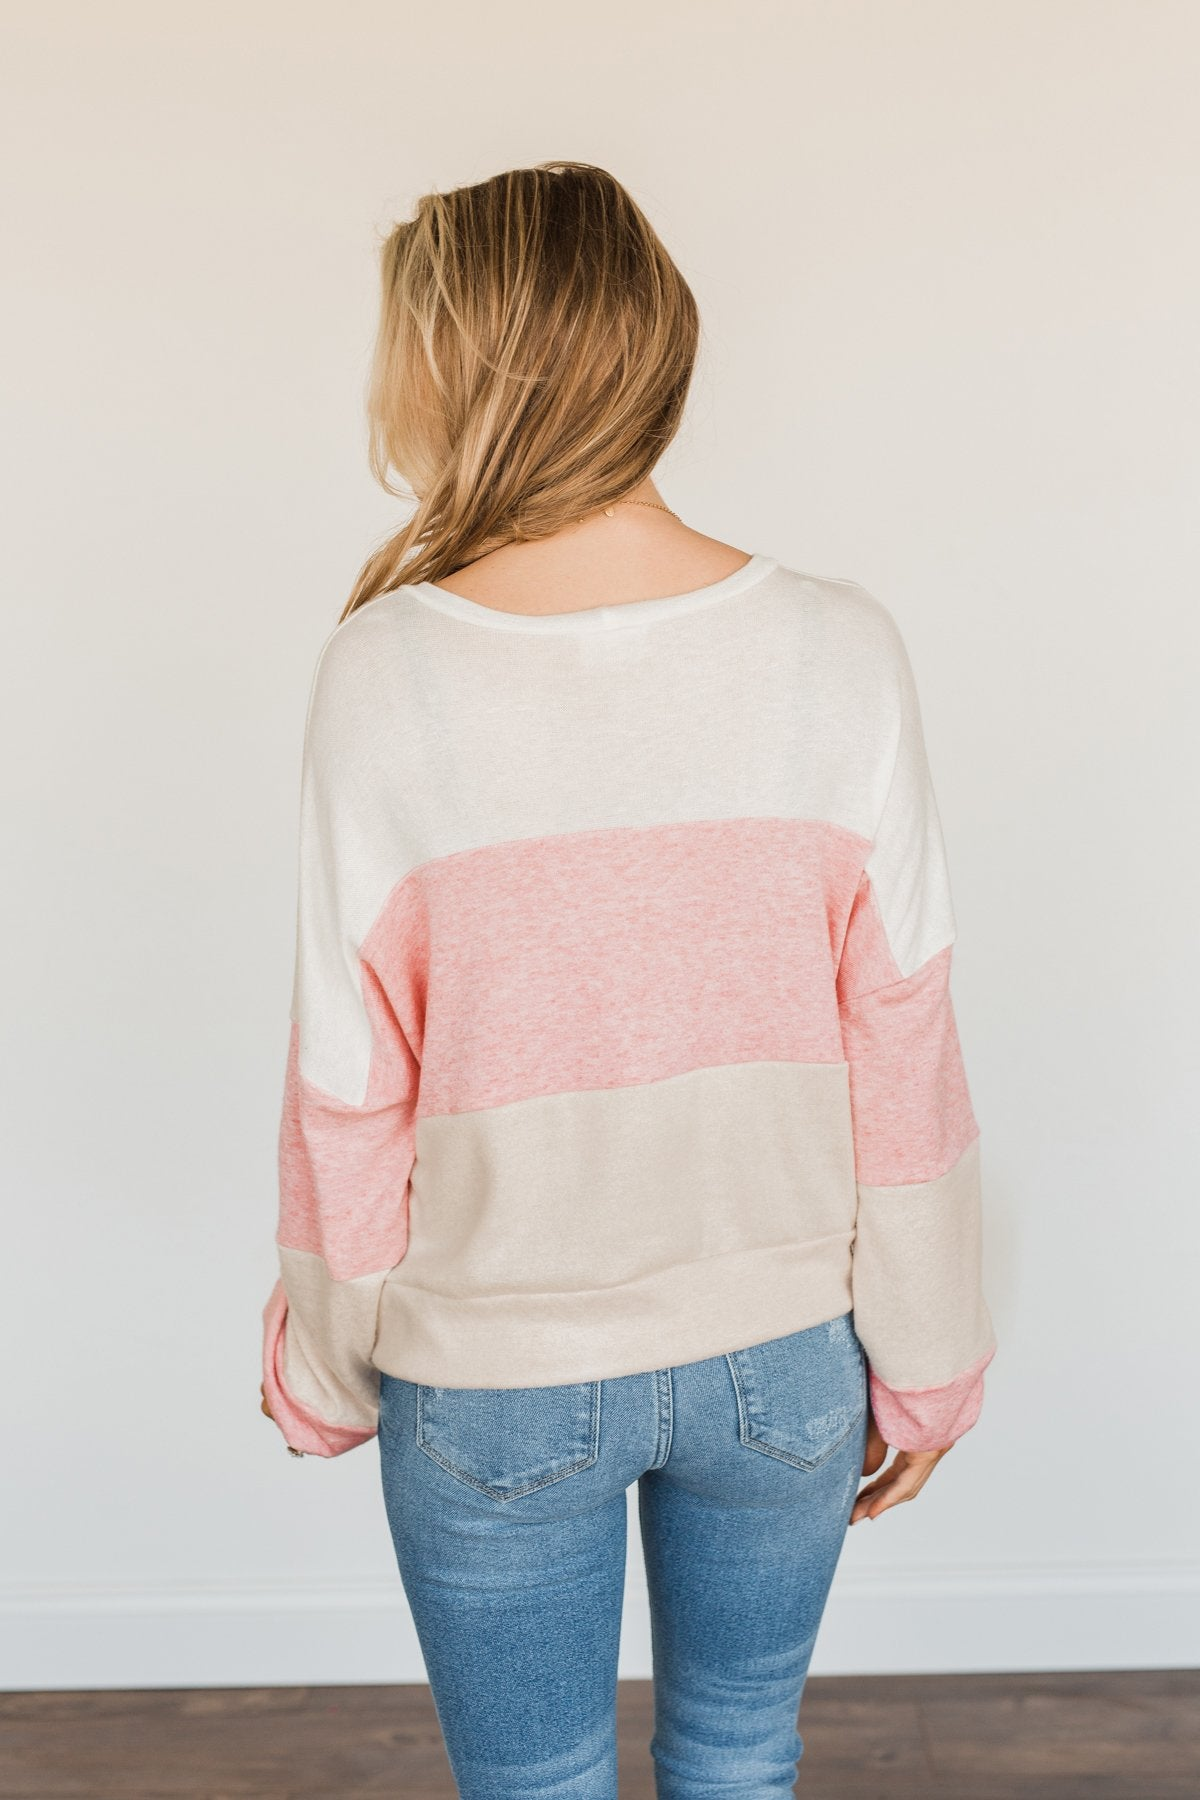 Chasing My Dreams Color Block Top- Ivory, Dusty Pink & Oatmeal